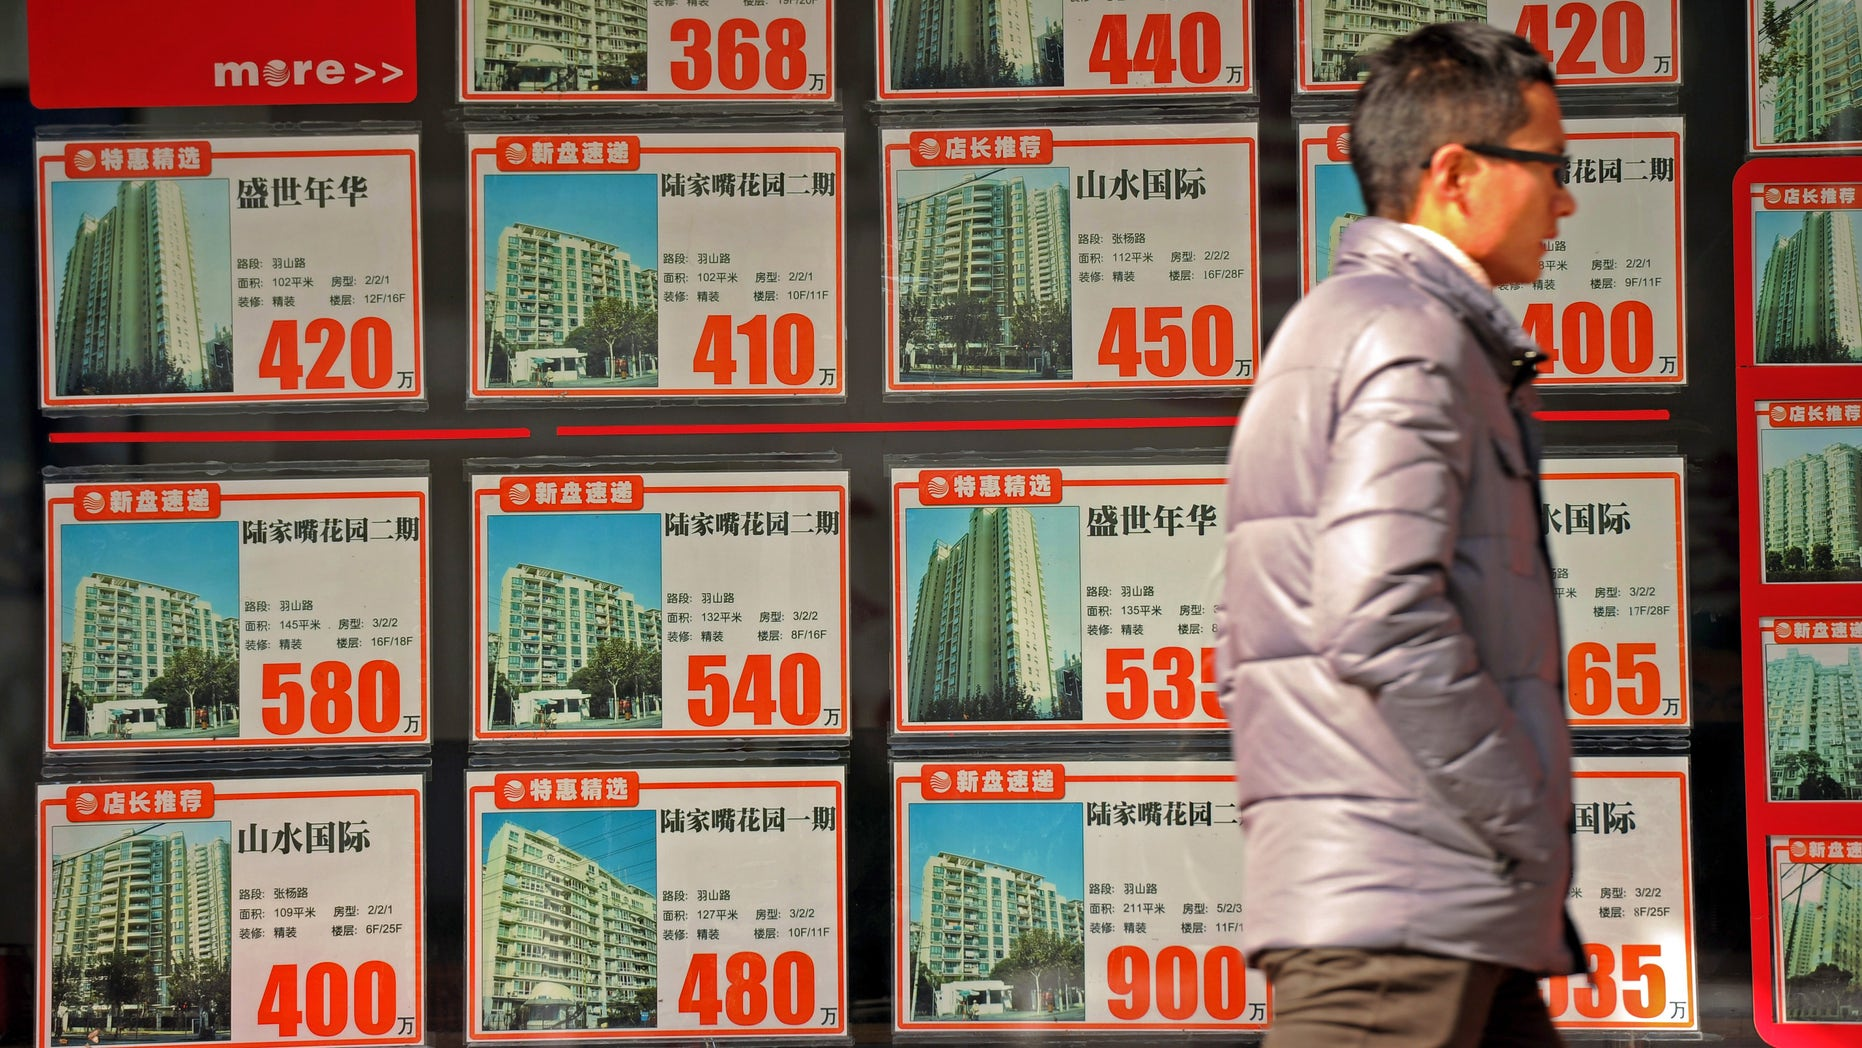 Chinese real estate listings